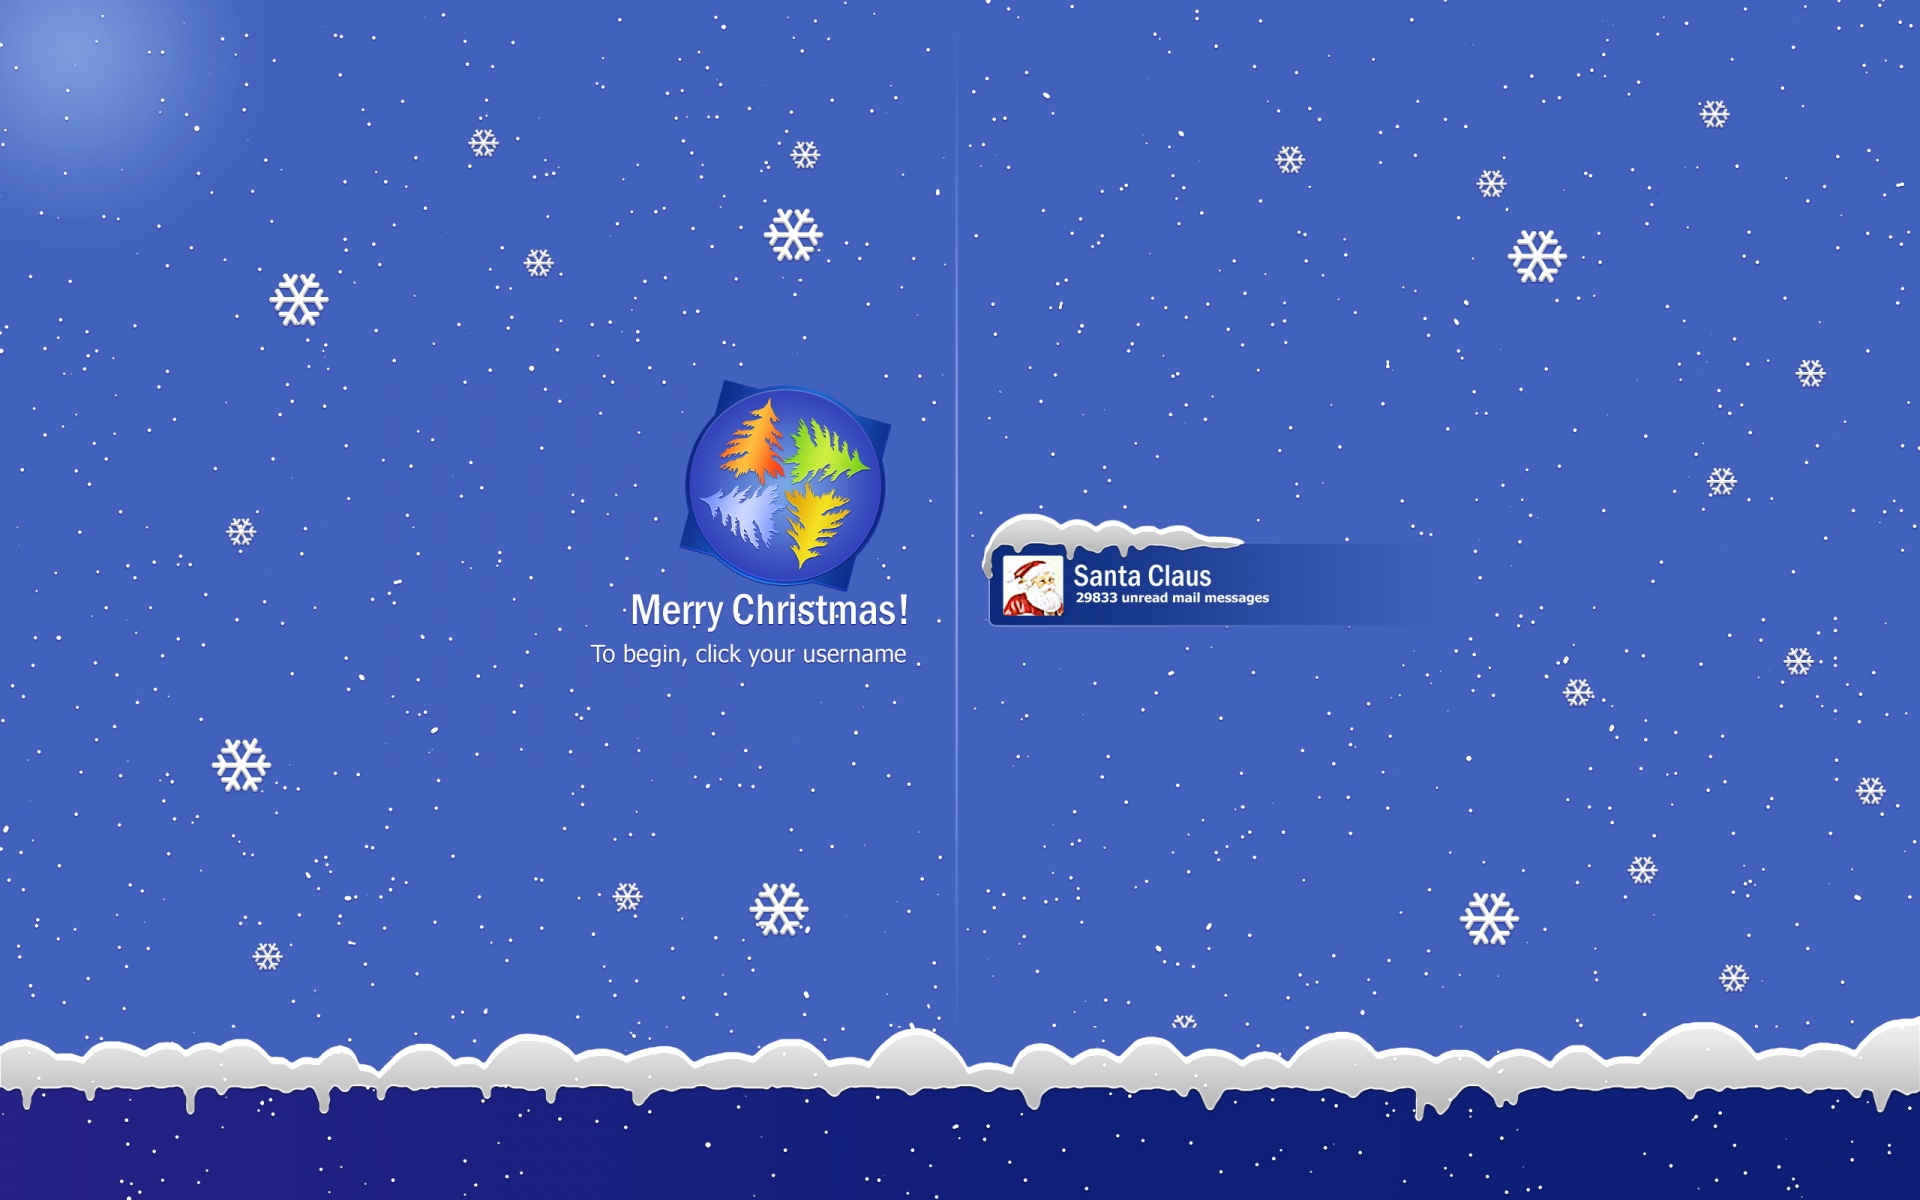 merry christmas wallpapers kigub